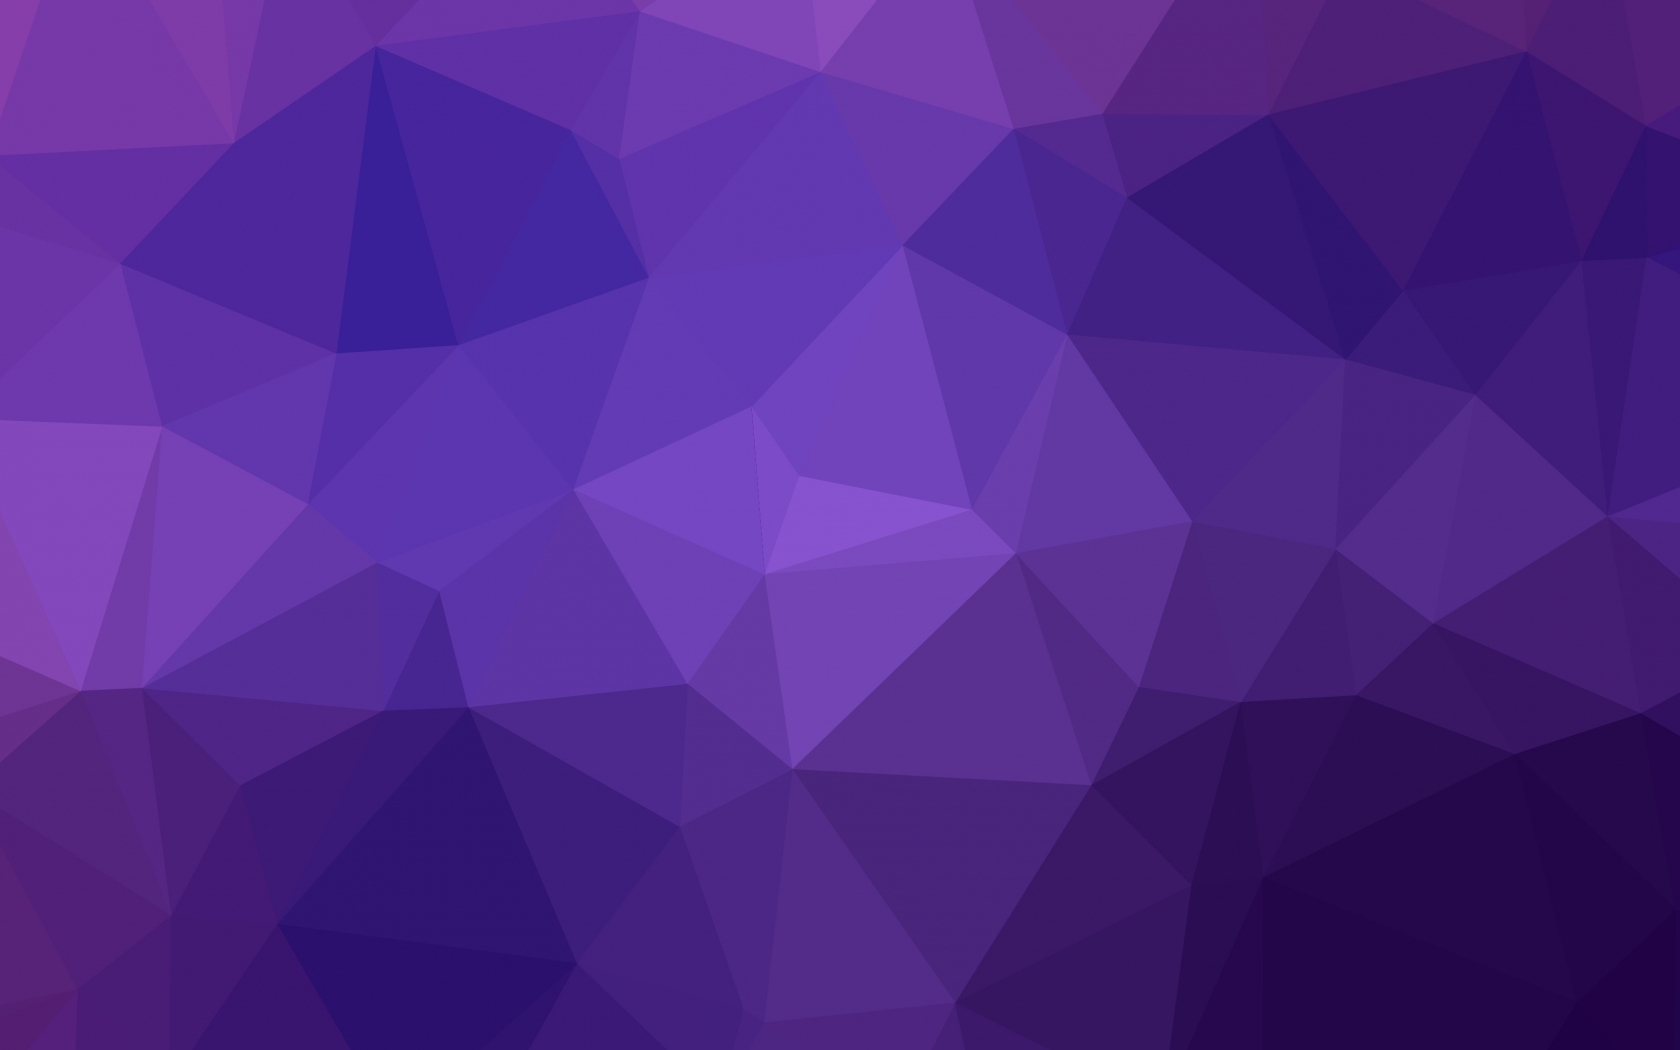 Geometry Triangles Gradient Purple Abstract 1680x1050 Wallpaper